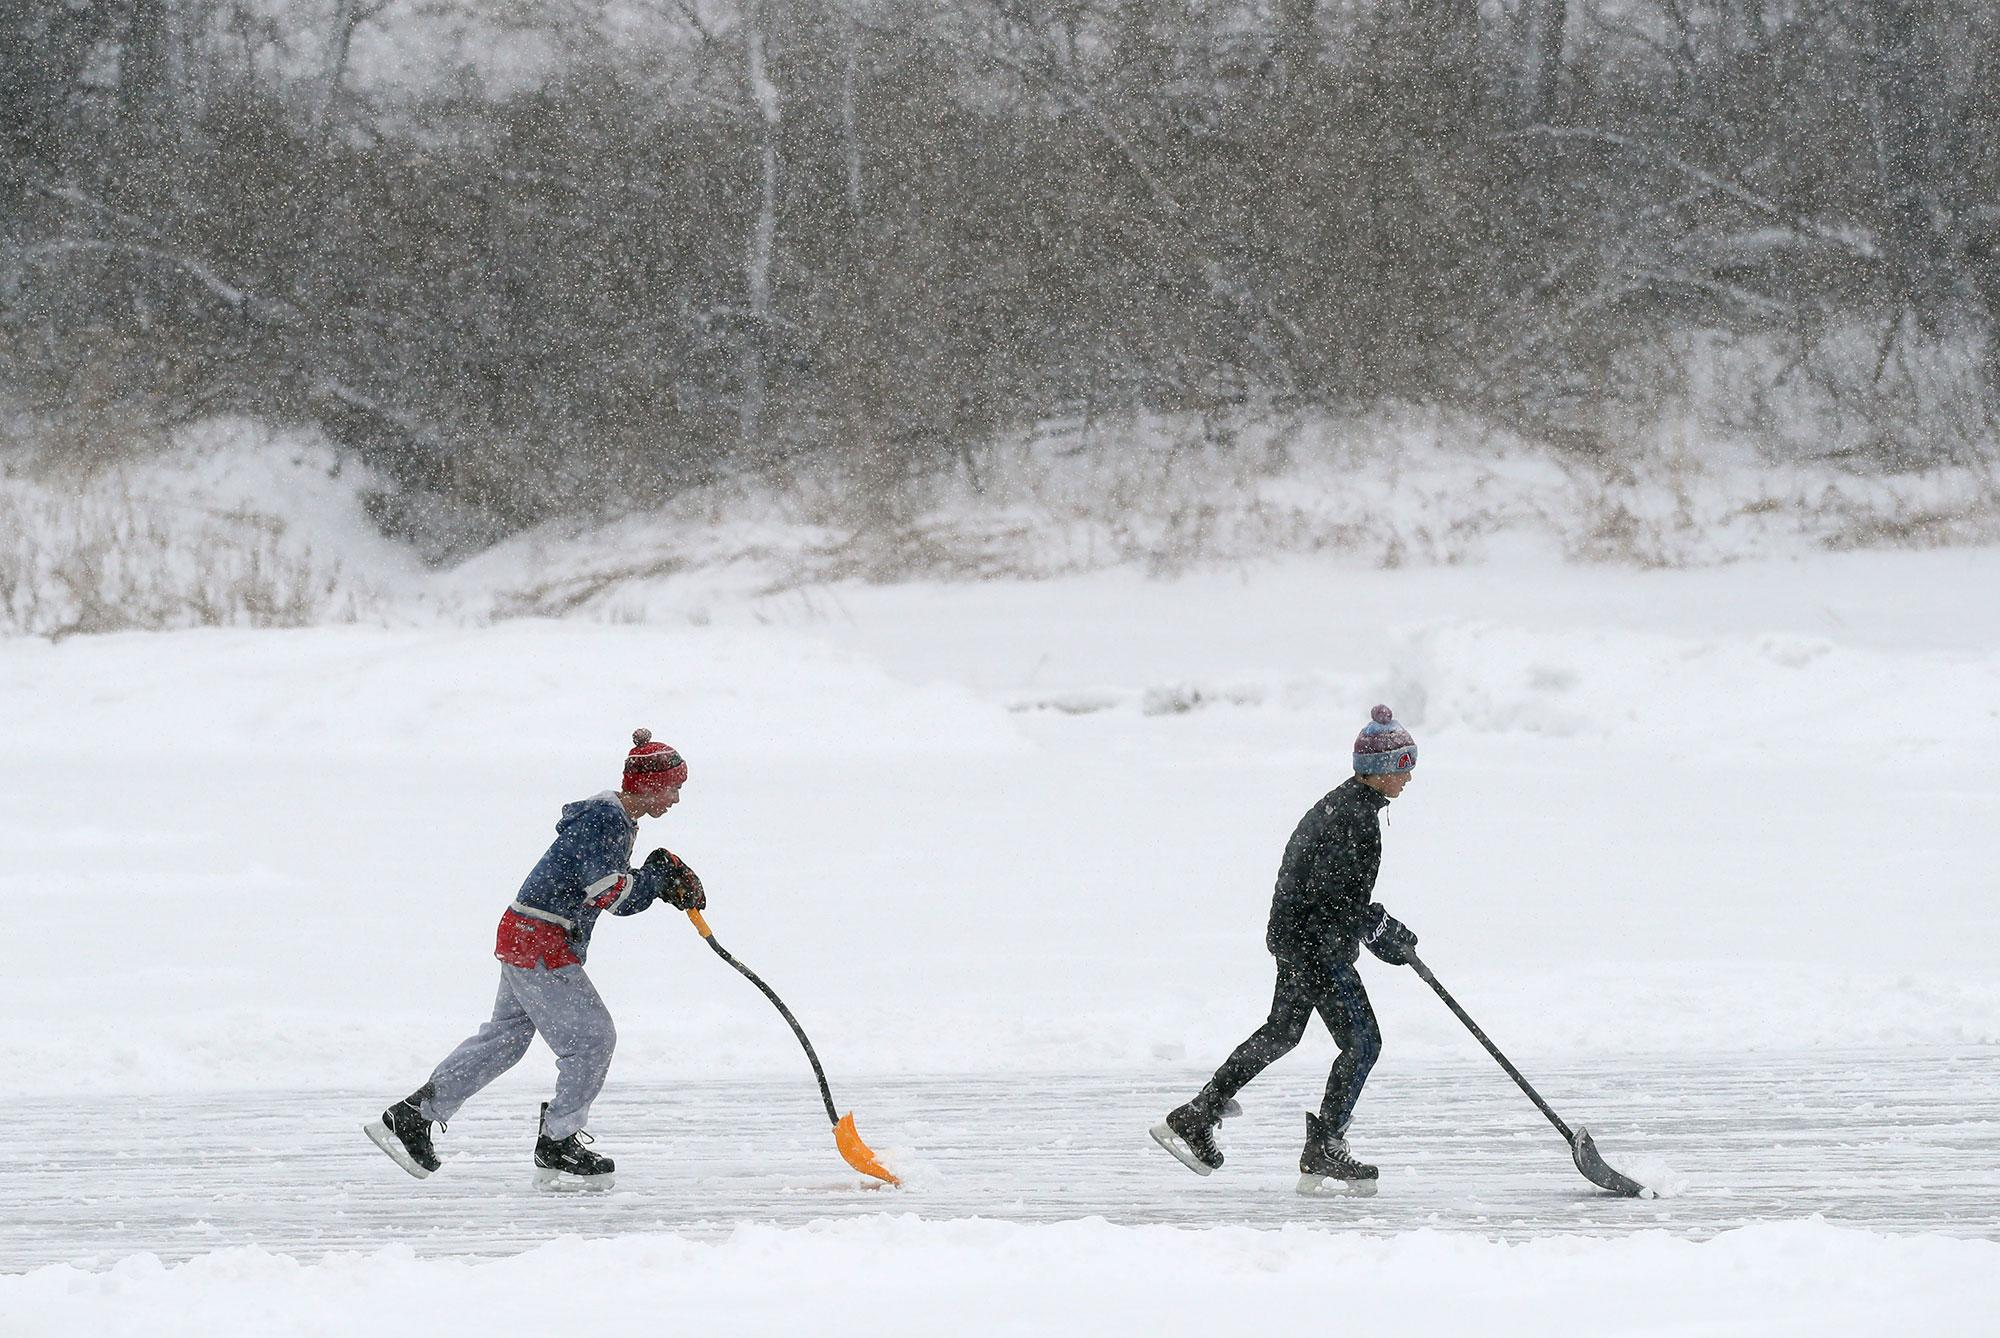 <p>Pond hockey players attempt to shovel snow faster than it can fall during a storm, Tuesday, March 14, 2017, in Yarmouth, Maine. About one foot of snow is expected in the area. A blustery late-season storm is hitting the Northeast, closing schools and prompting dire warnings to stay off the roads. (AP Photo/Robert F. Bukaty) </p>